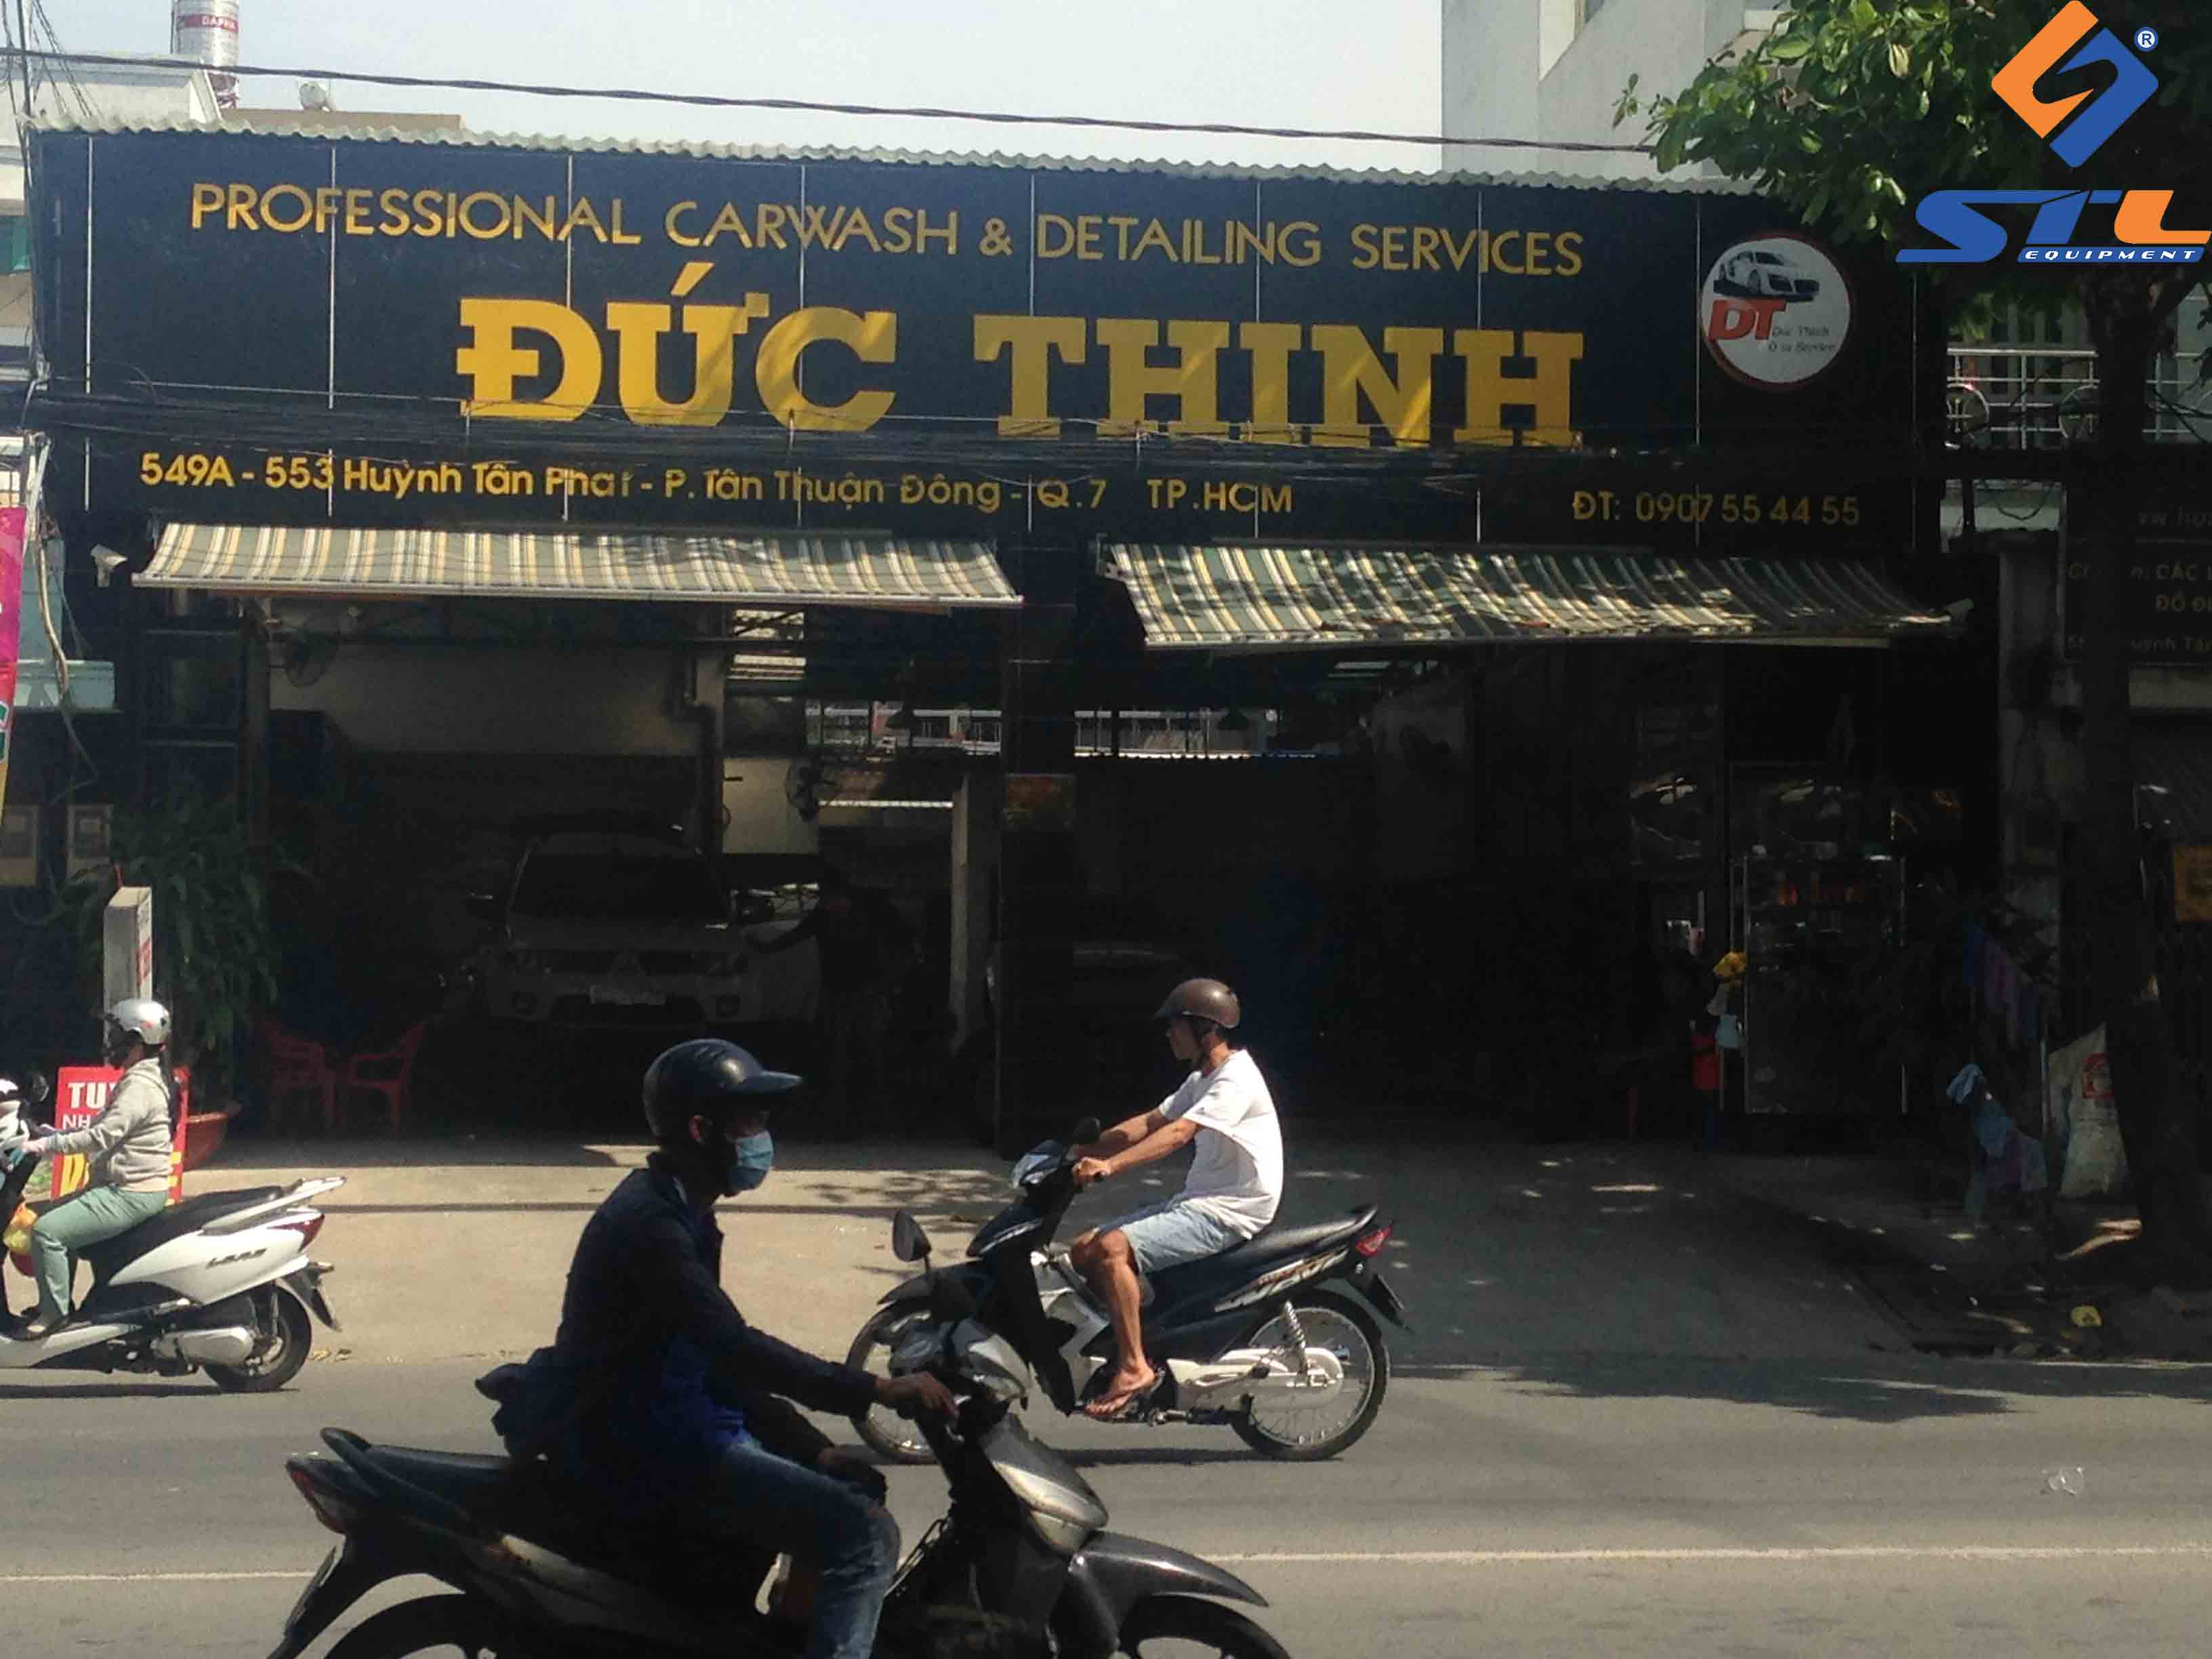 Detailing-Services-Duc-Thinh